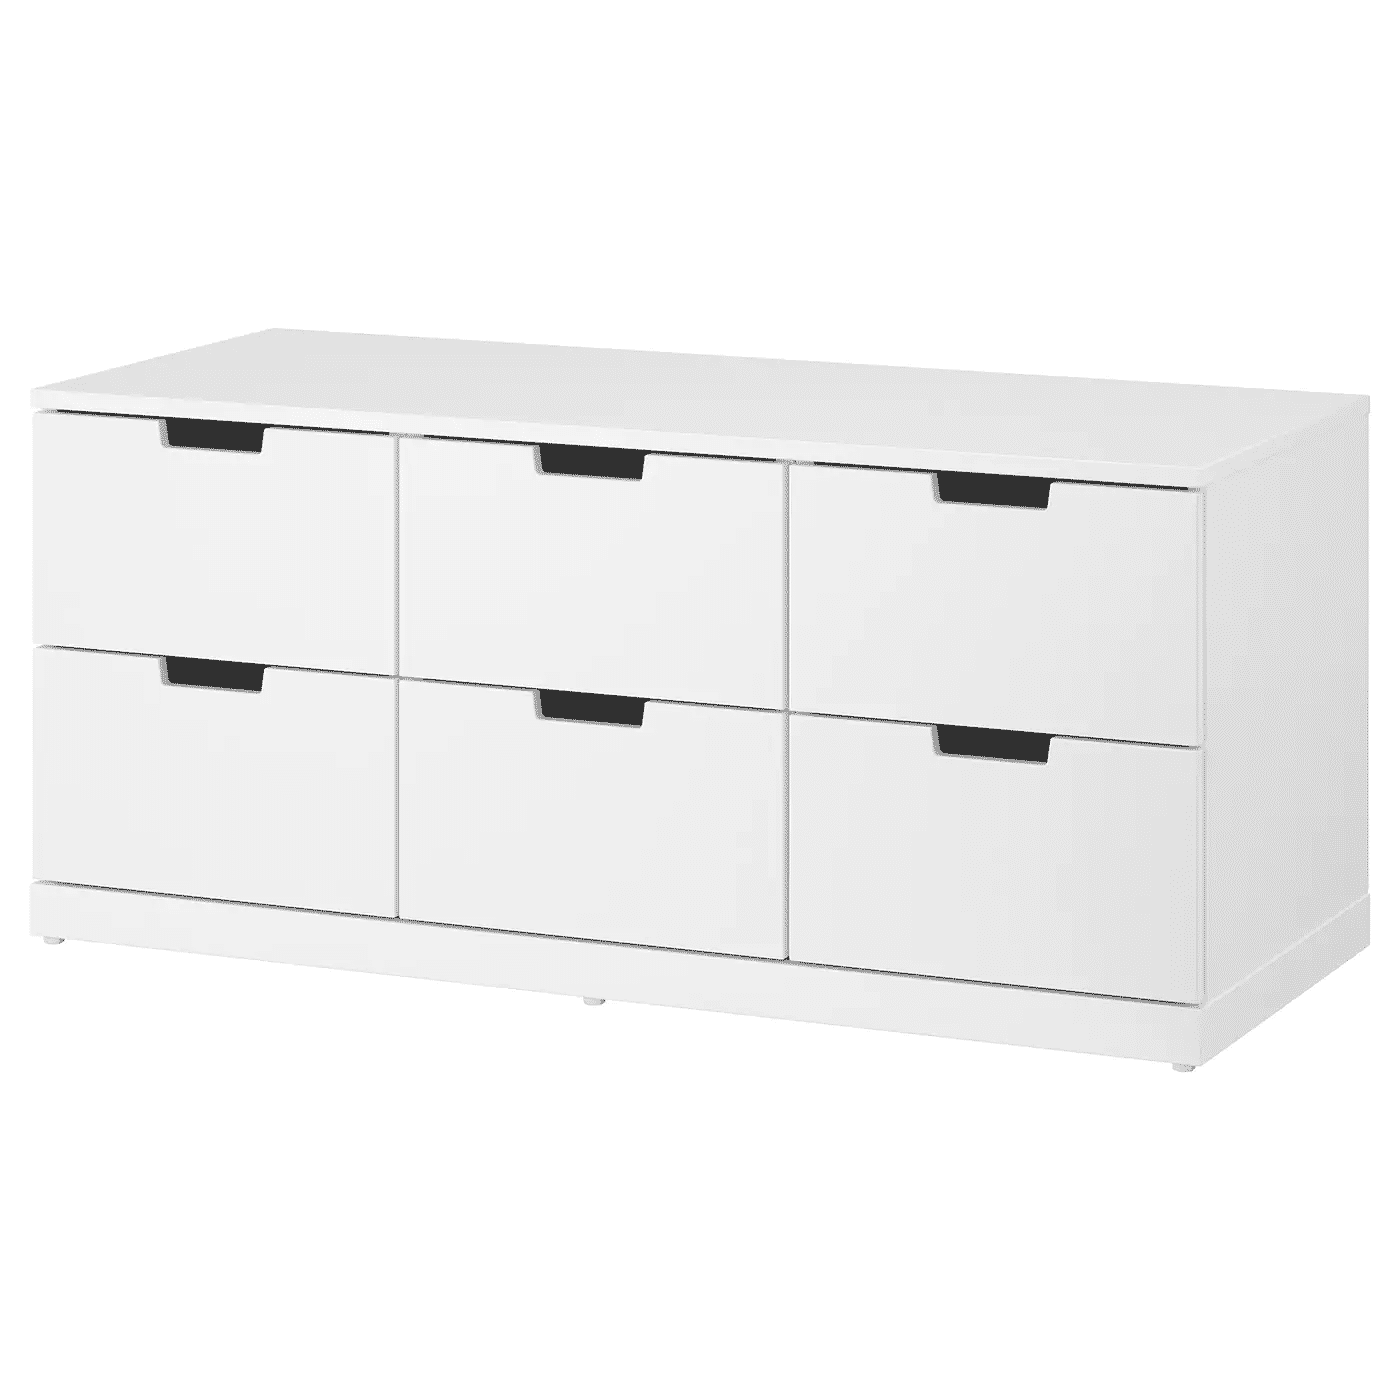 Nordli 6 Drawer Dresser